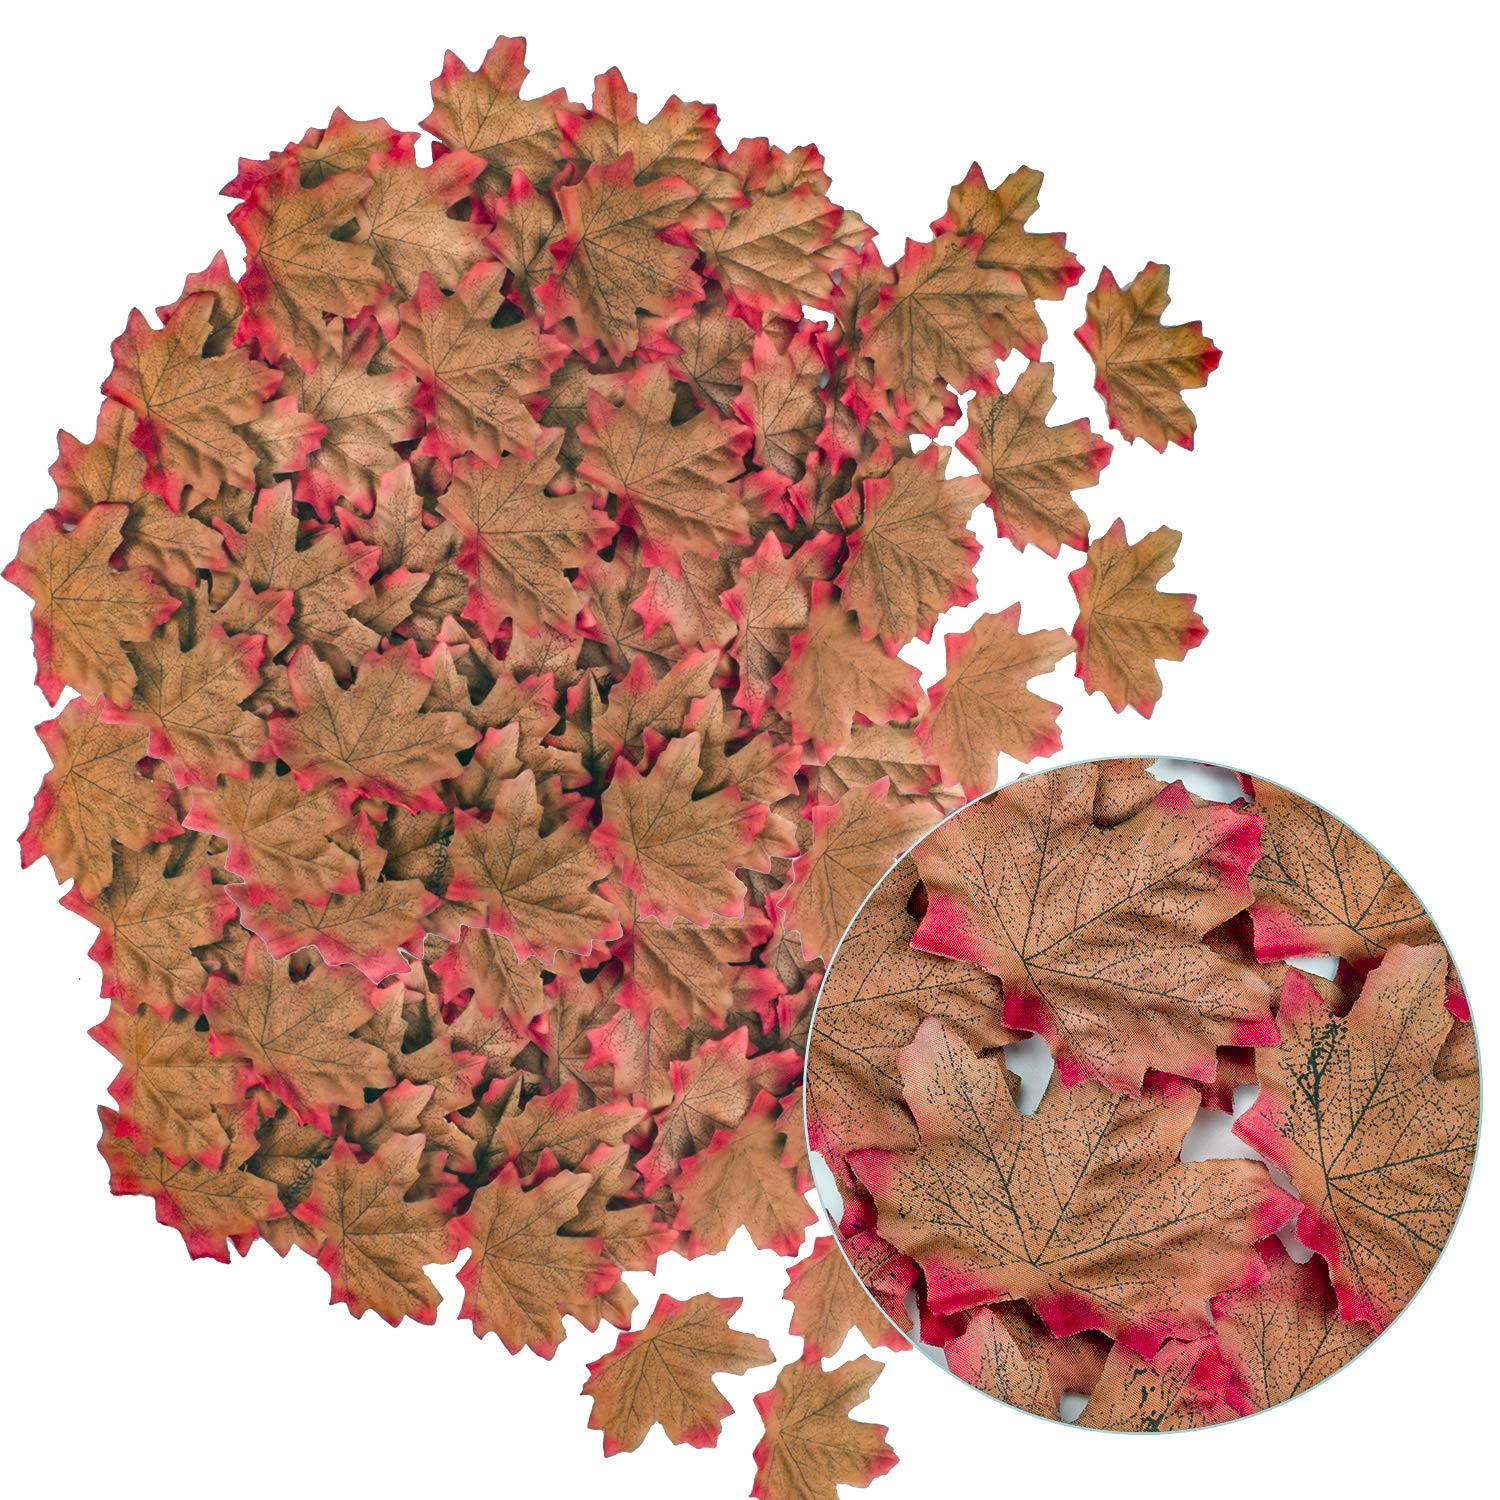 HENMI 500PCS Artificial Maple Leaves 5 Assorted Mixed Fake Fall Maple Leaf Lifelike Looking Silk Autumn Fall Leaf Garland for Thanksgiving Fall Themed Weeding Party Festival Table Decorations